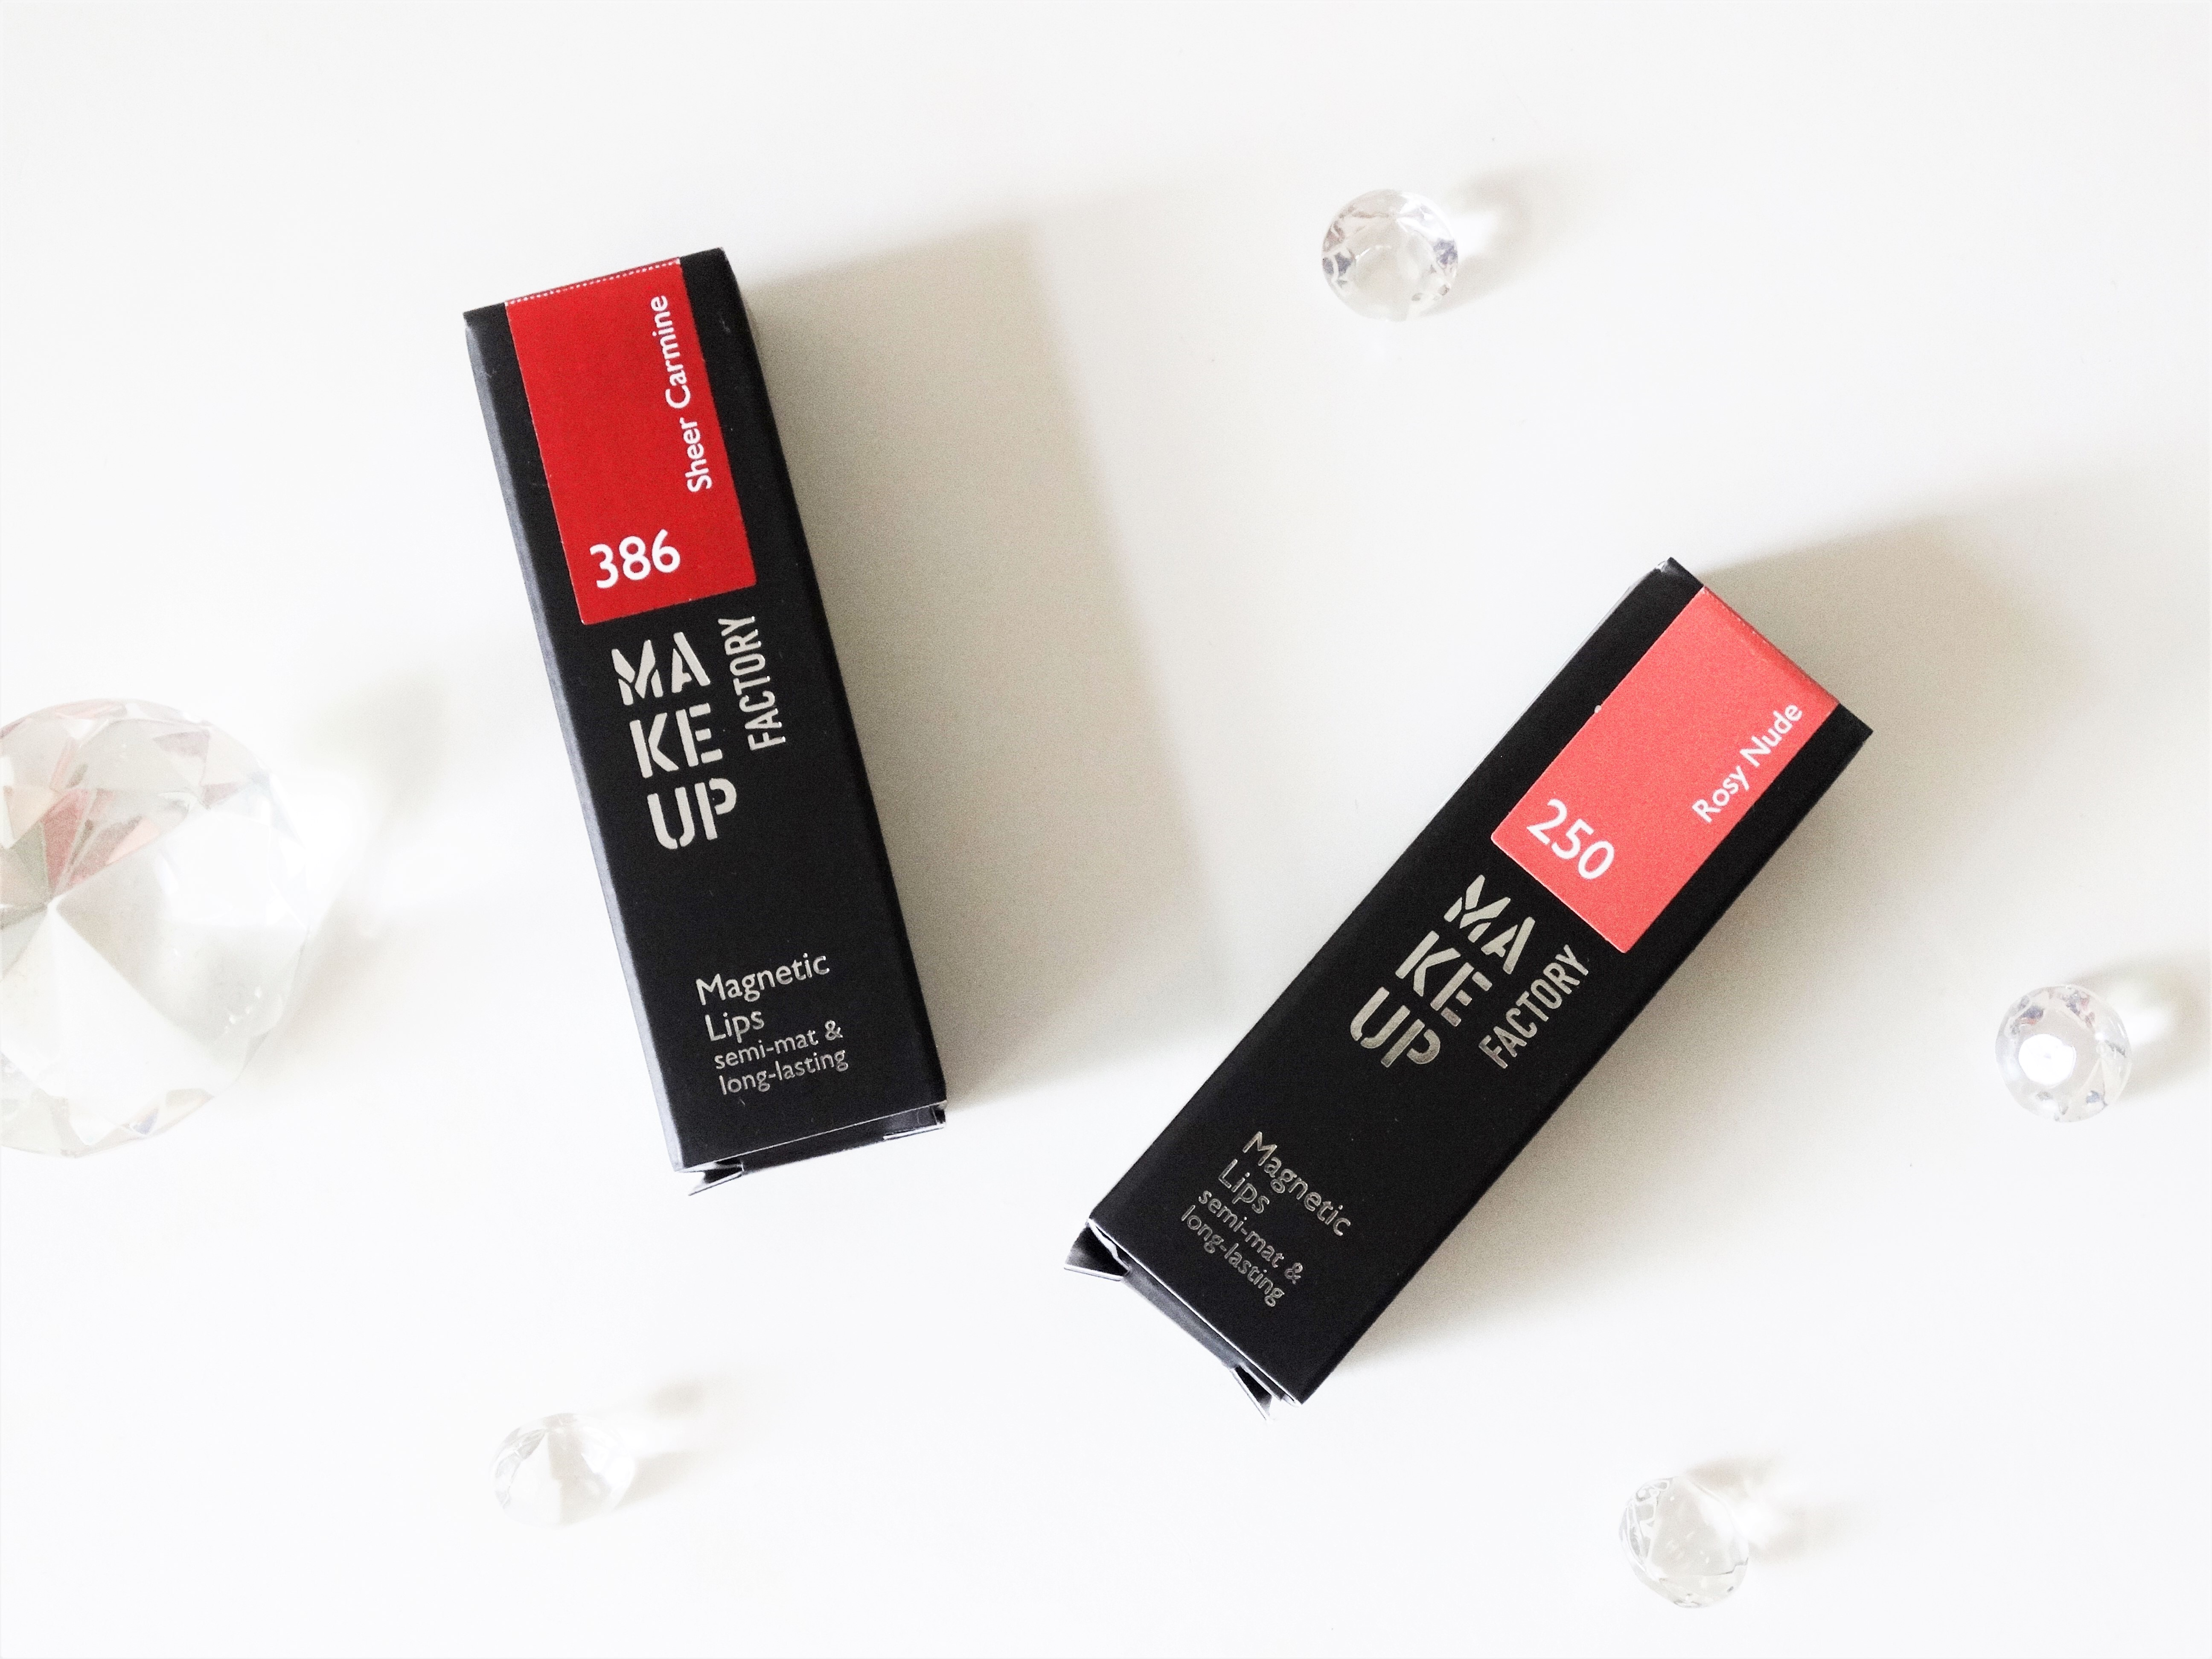 The Make up Factory Magnetic lips